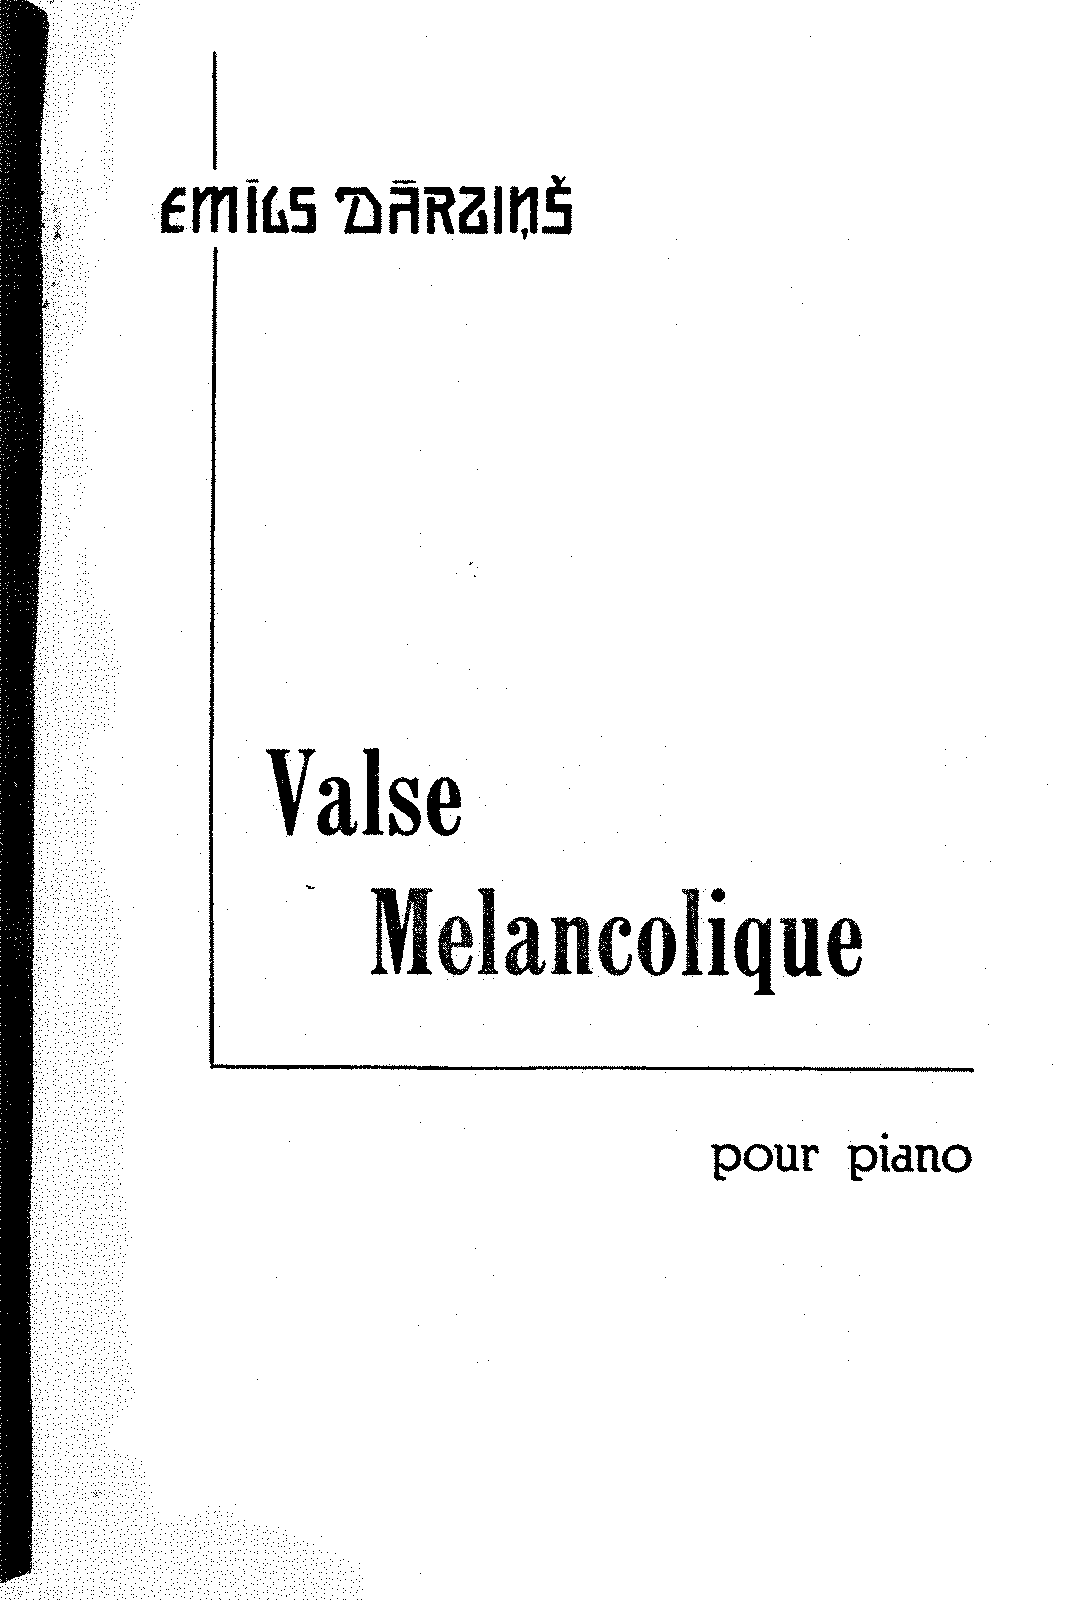 PMLP192889-Darzins - Valse melancolique PS.pdf